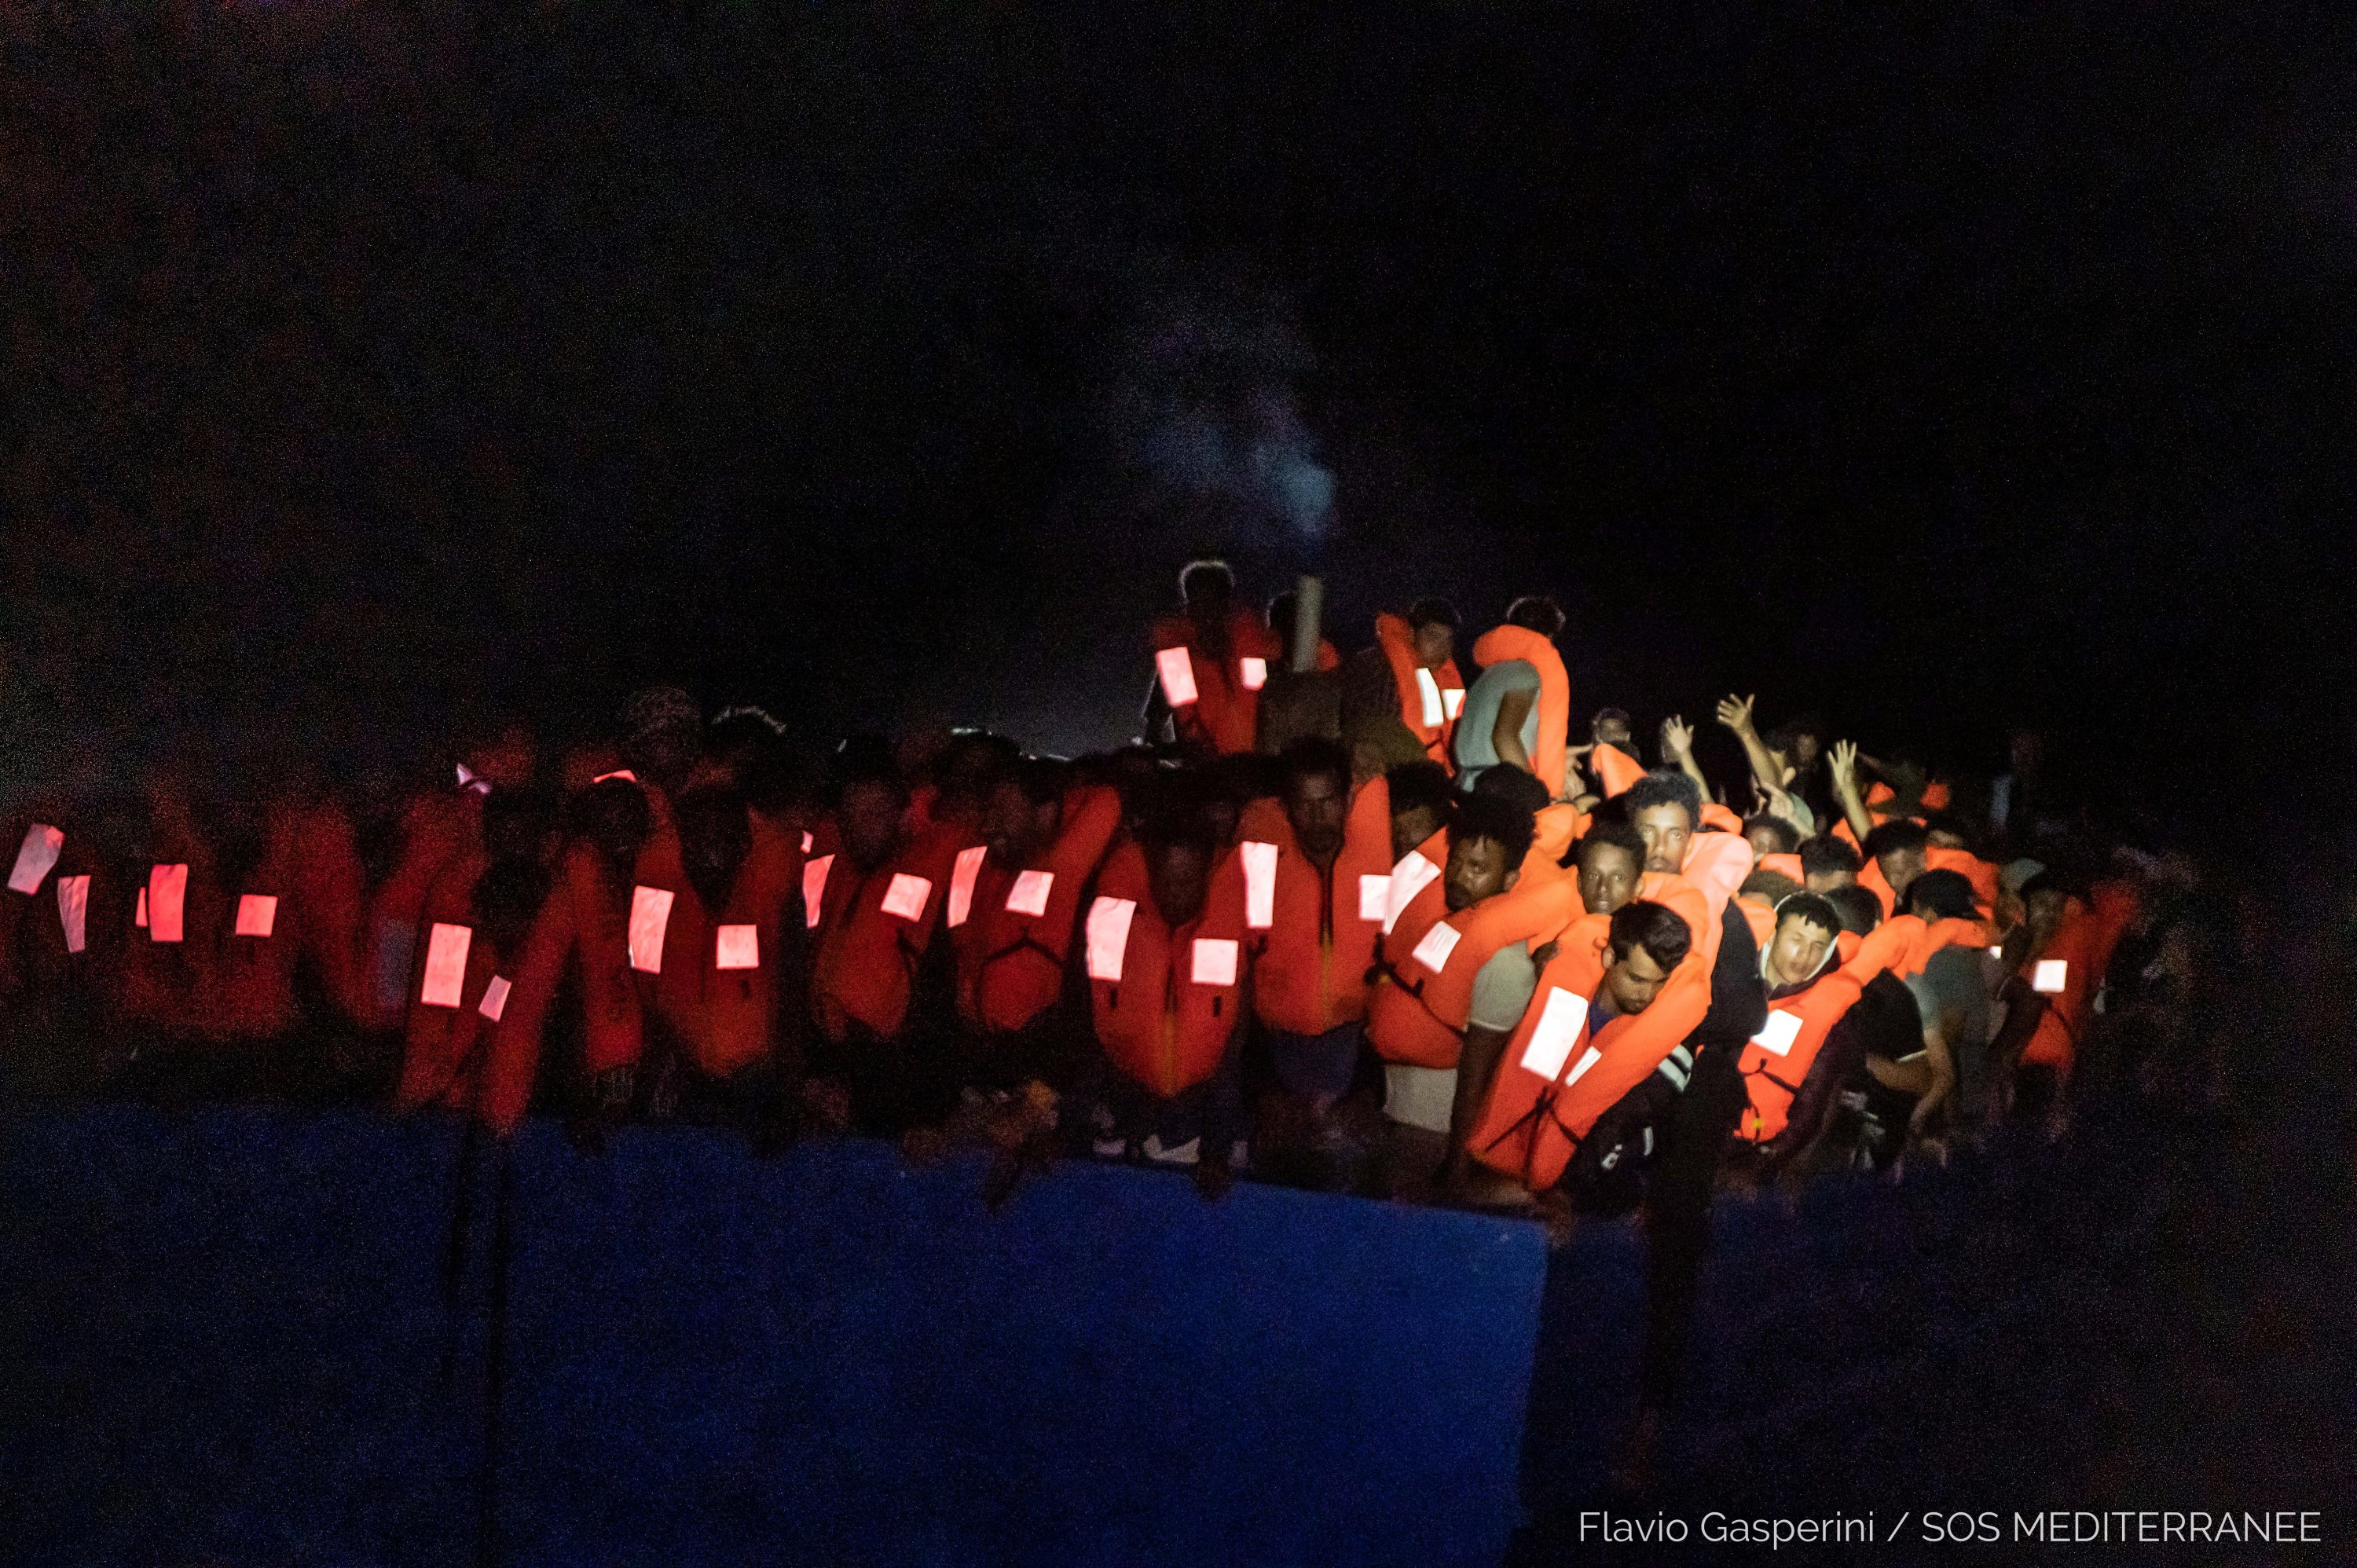 Migrants wait to be rescued by the Ocean Viking during a search and rescue (SAR) operation in the Mediterranean Sea, July 5, 2021. (Flavio Gasperini/SOS Mediterranee/Handout via REUTERS)